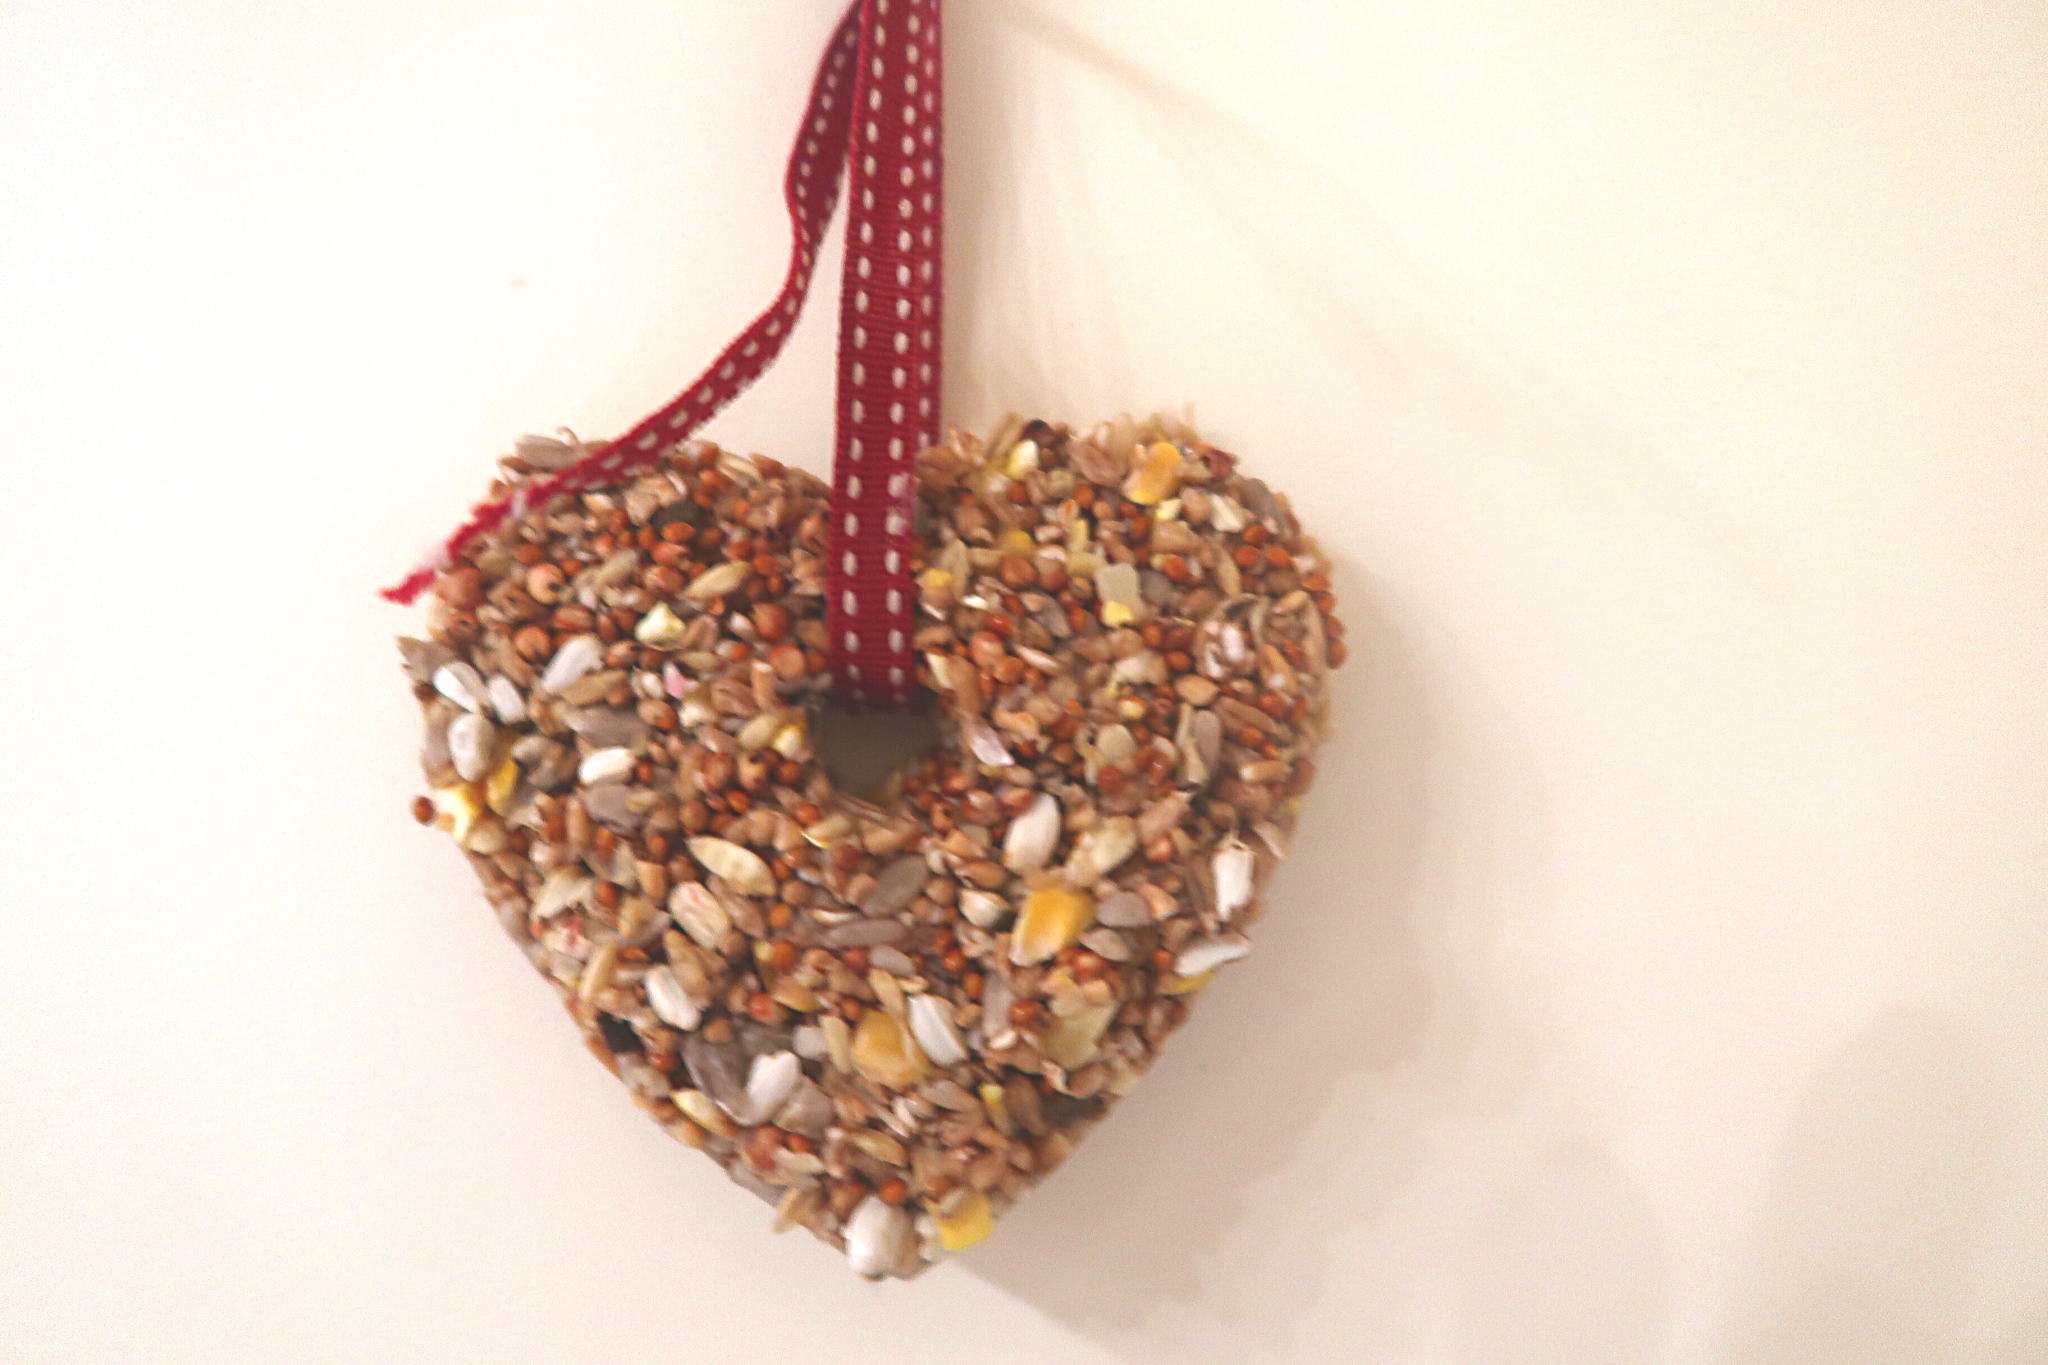 A heart shaped easy homemade bird feeder